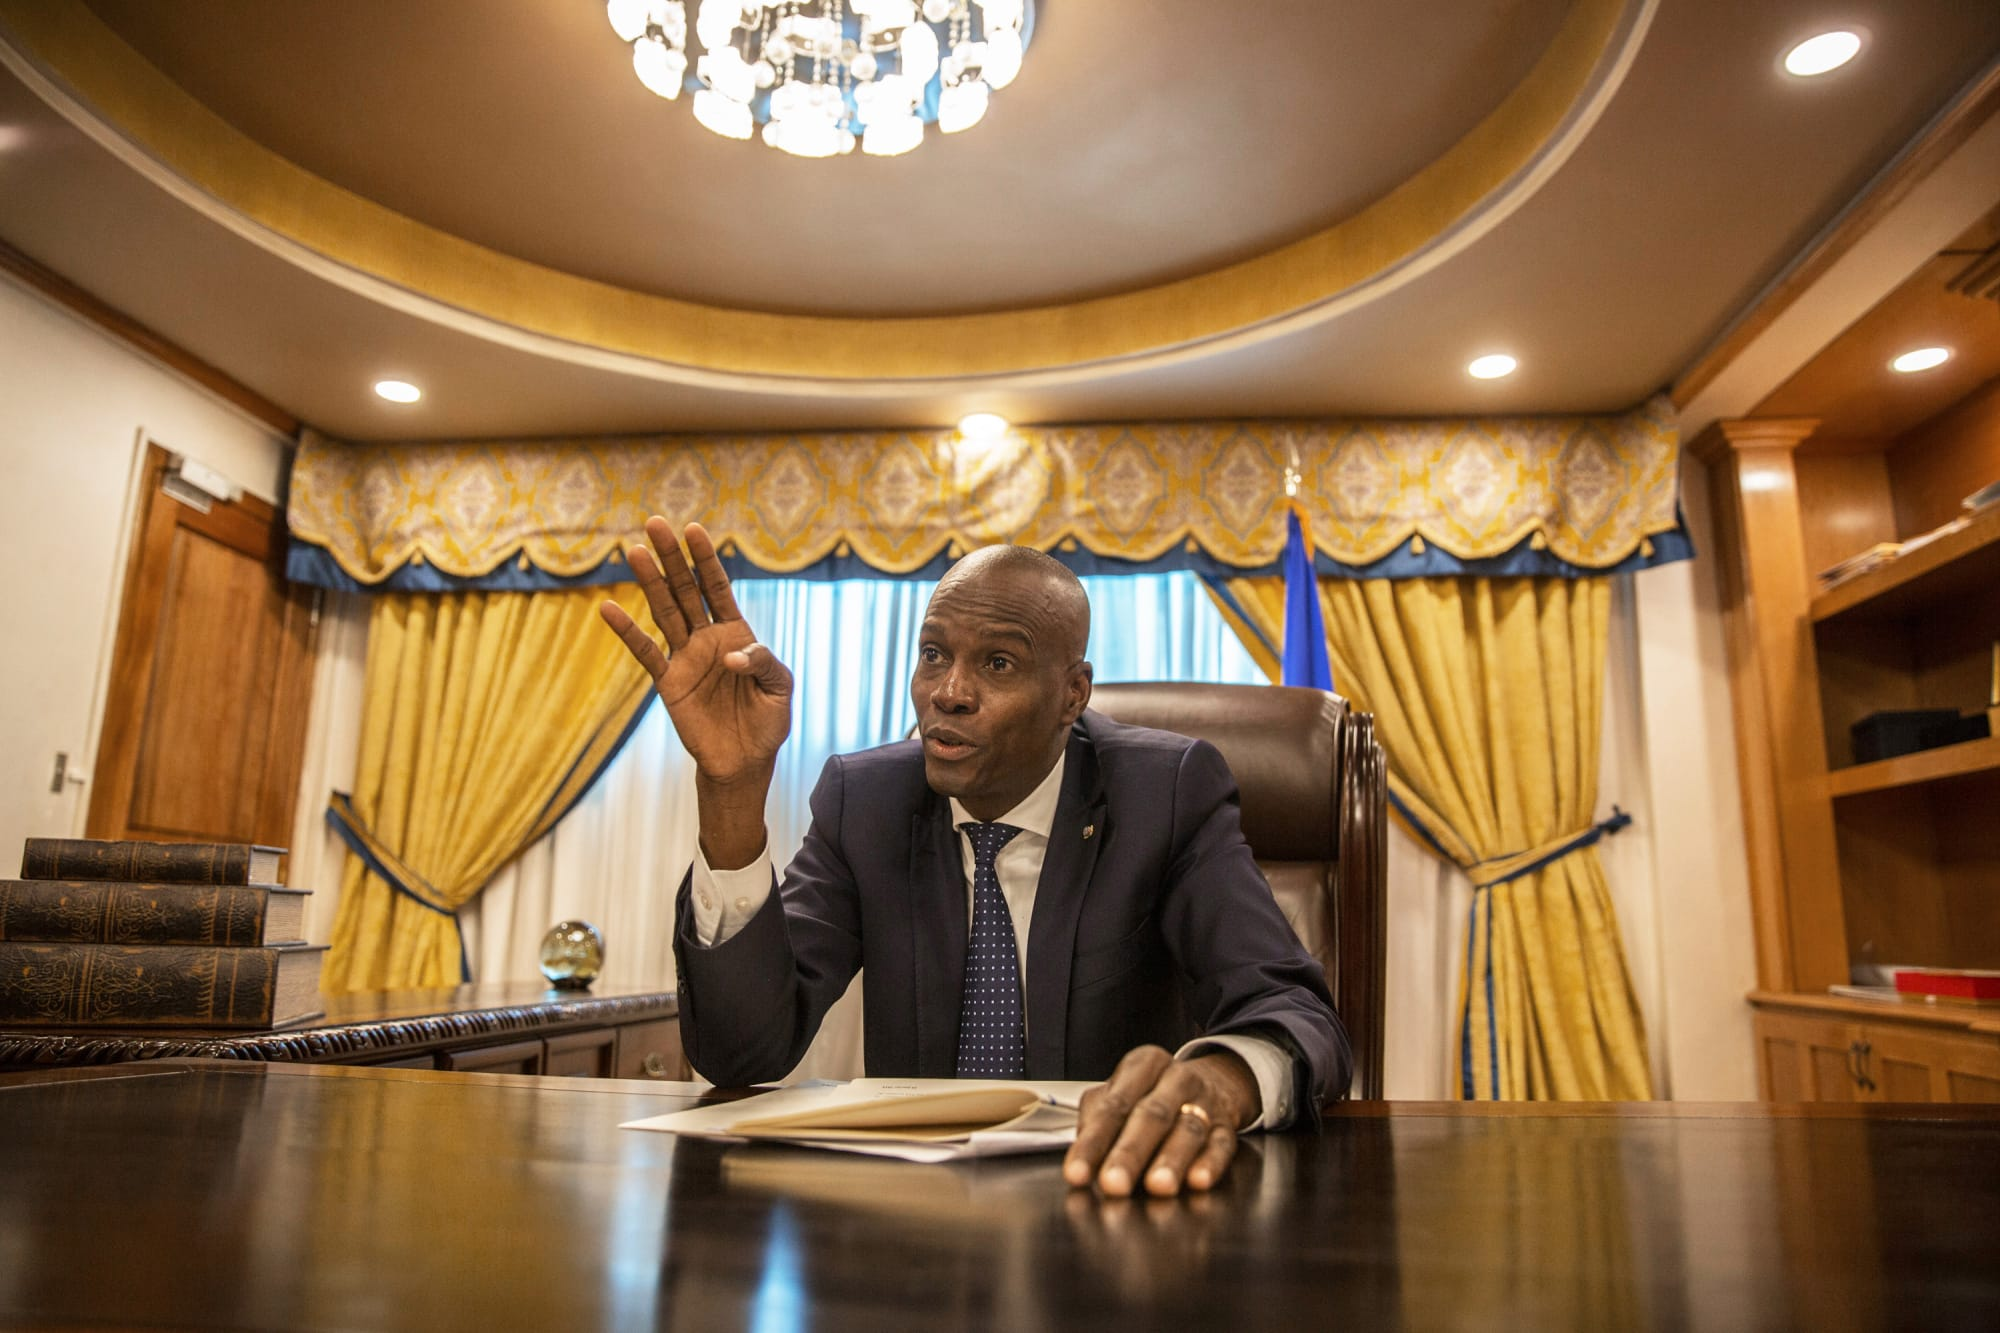 Pour Jovenel Moise, Donald Trump a raison sur un point. Photo: Alejandro Cegarra/Bloomberg